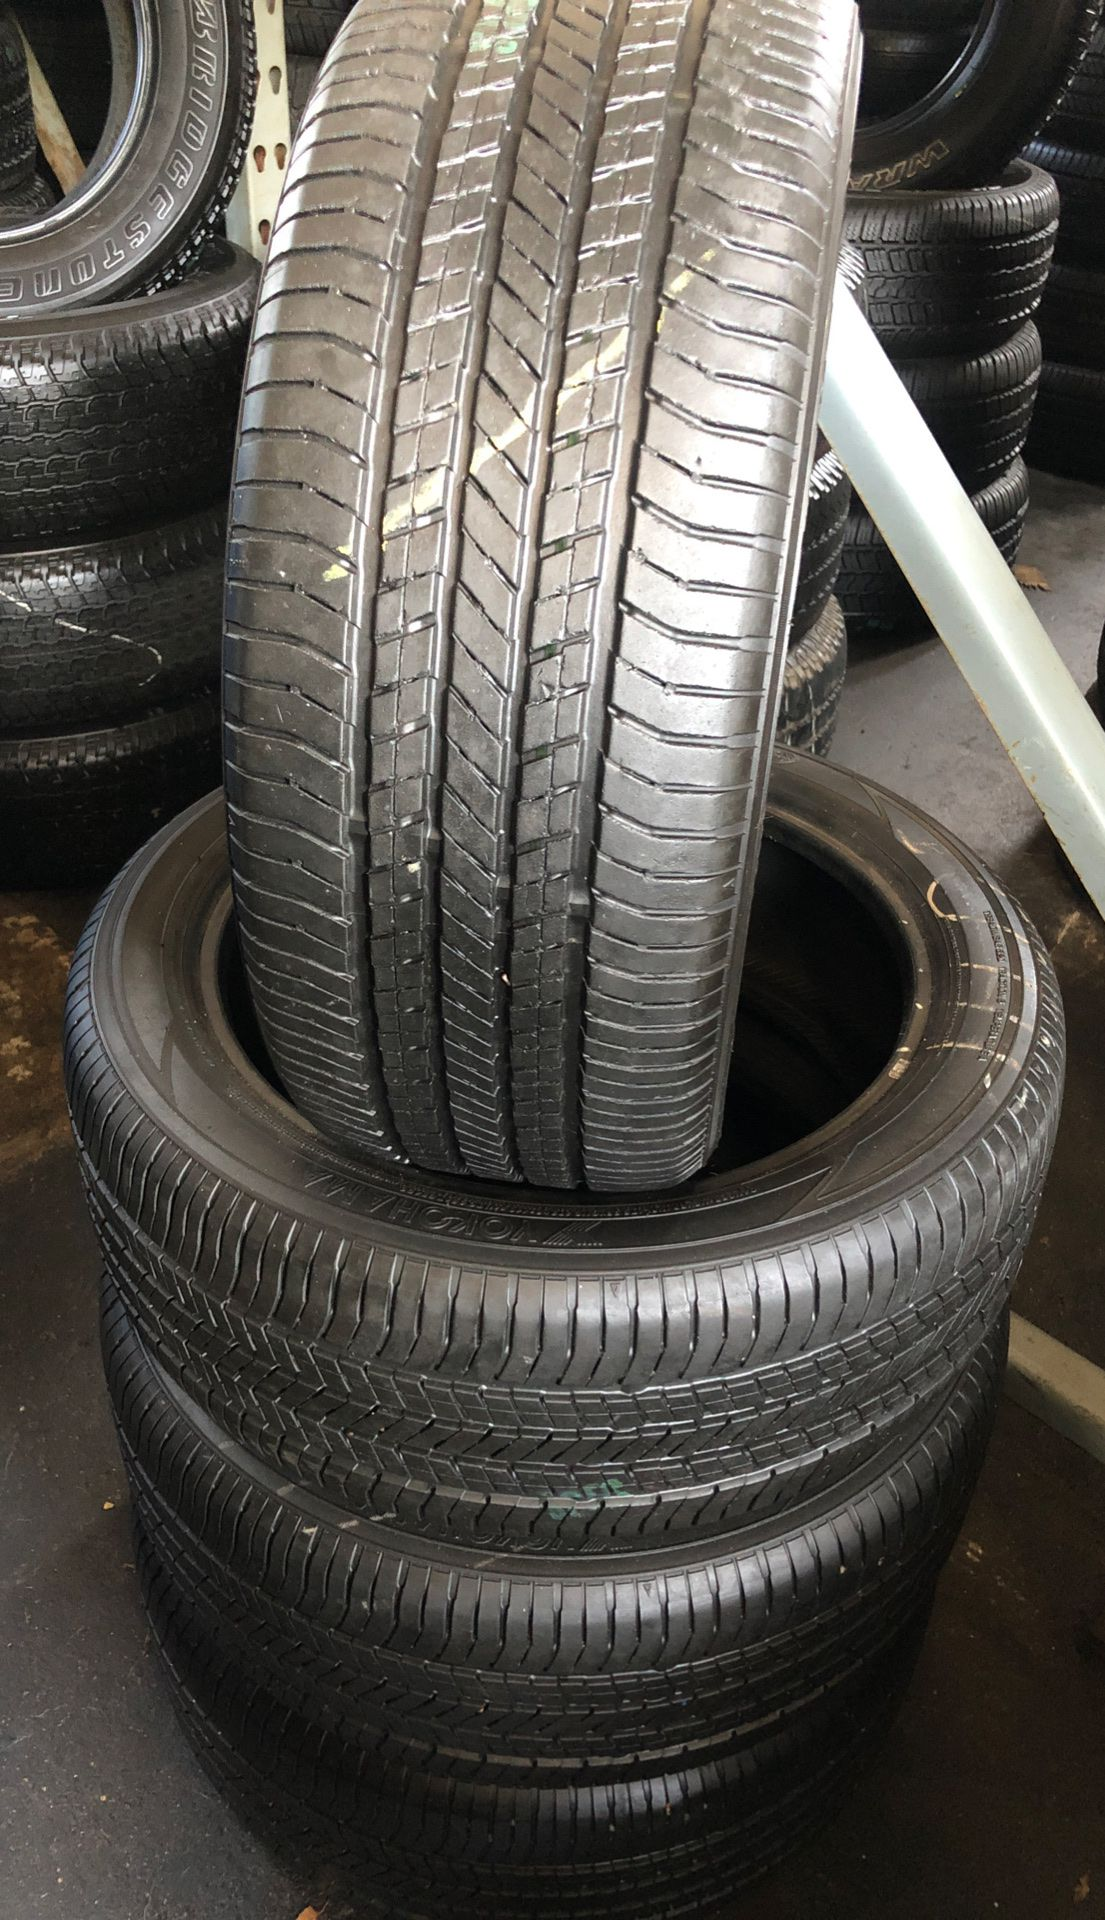 Set of semi new tires 215/60R18 Yokohama for $230 the price includes installation and balance, ask for any size you need